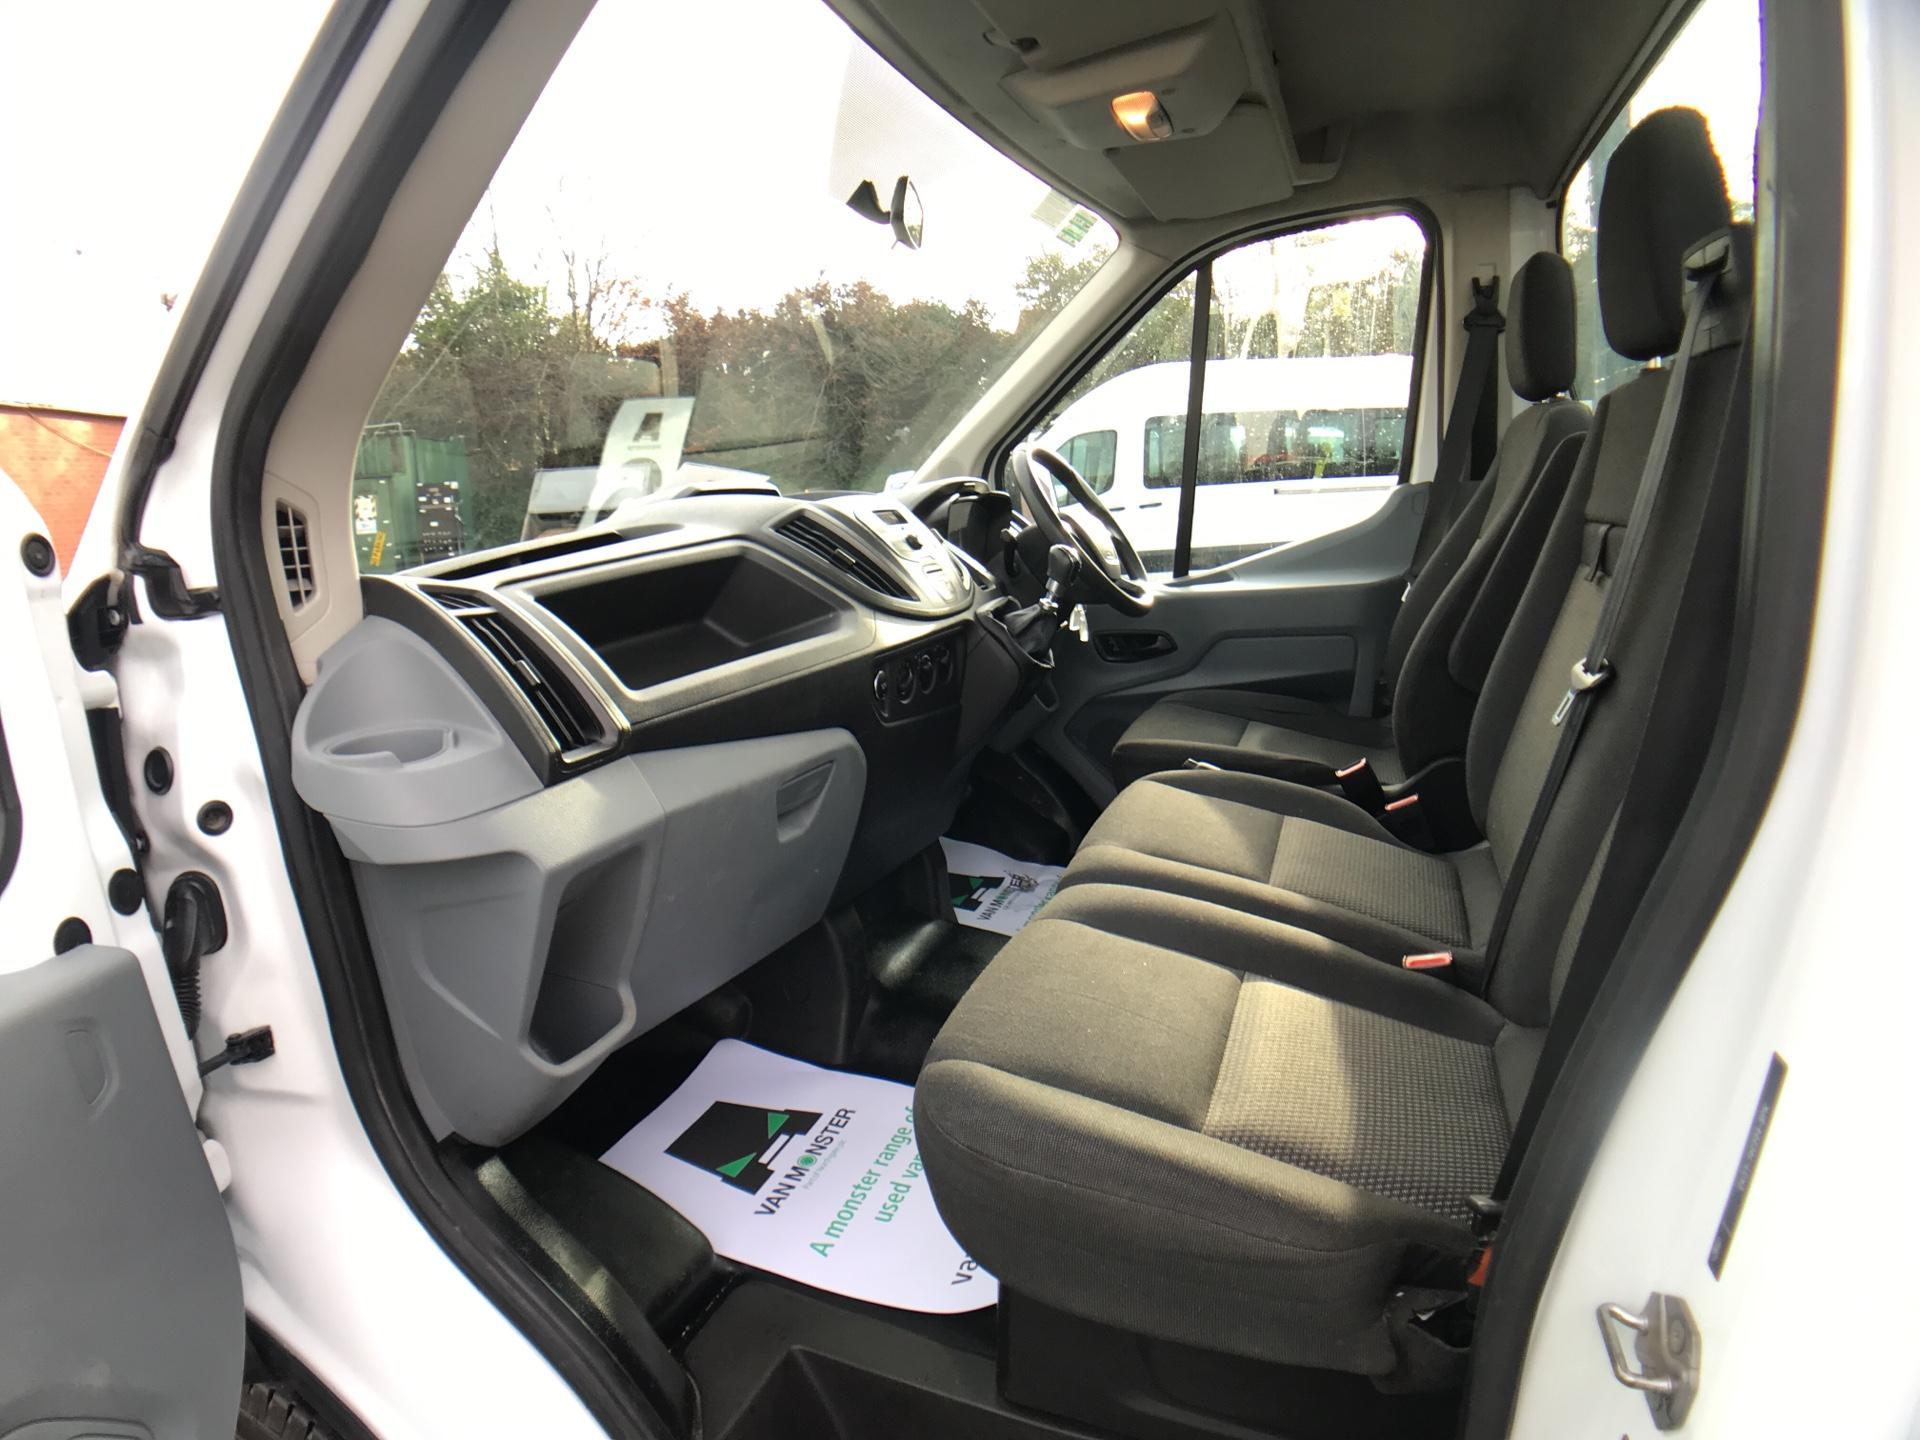 2016 Ford Transit 350 L2 SINGLE CAB TIPPER 125PS EURO 5 *VALUE RANGE VEHICLE CONDITION REFLECTED IN PRICE* (WR65VYK) Image 14